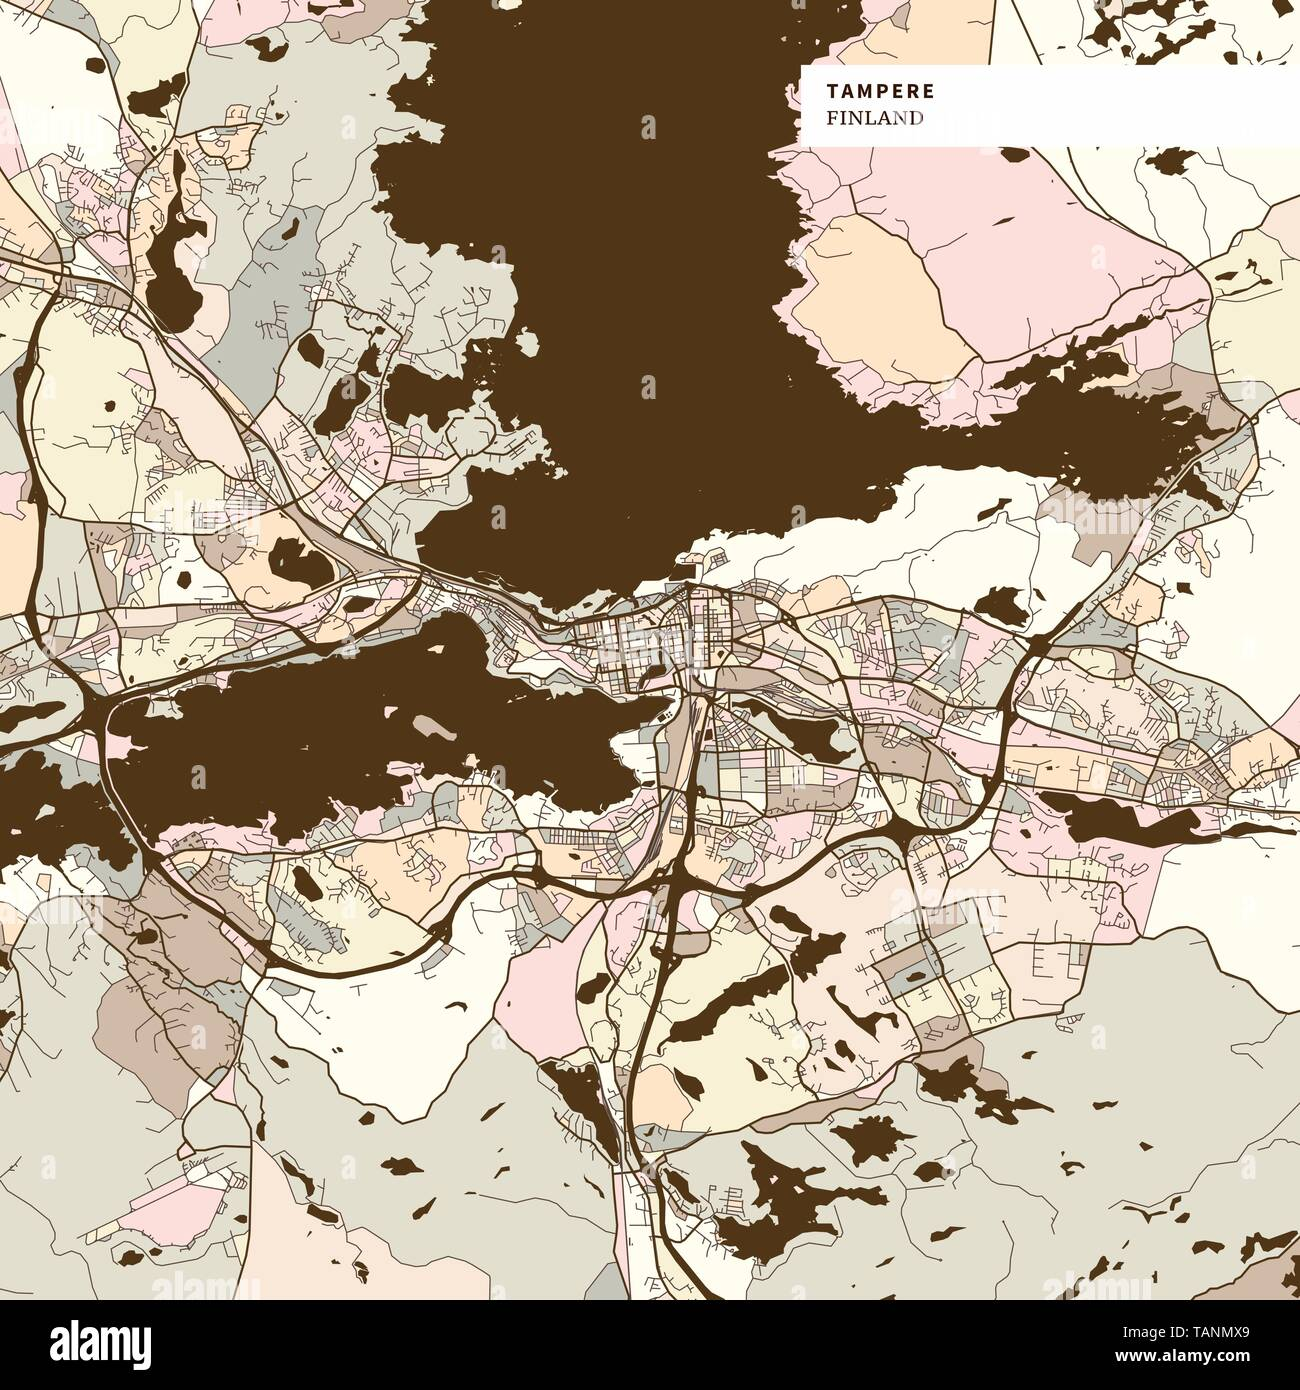 Map of Tampere Finland, art map print template. Brown colored version for Apps, Print or web backgrounds - Stock Vector